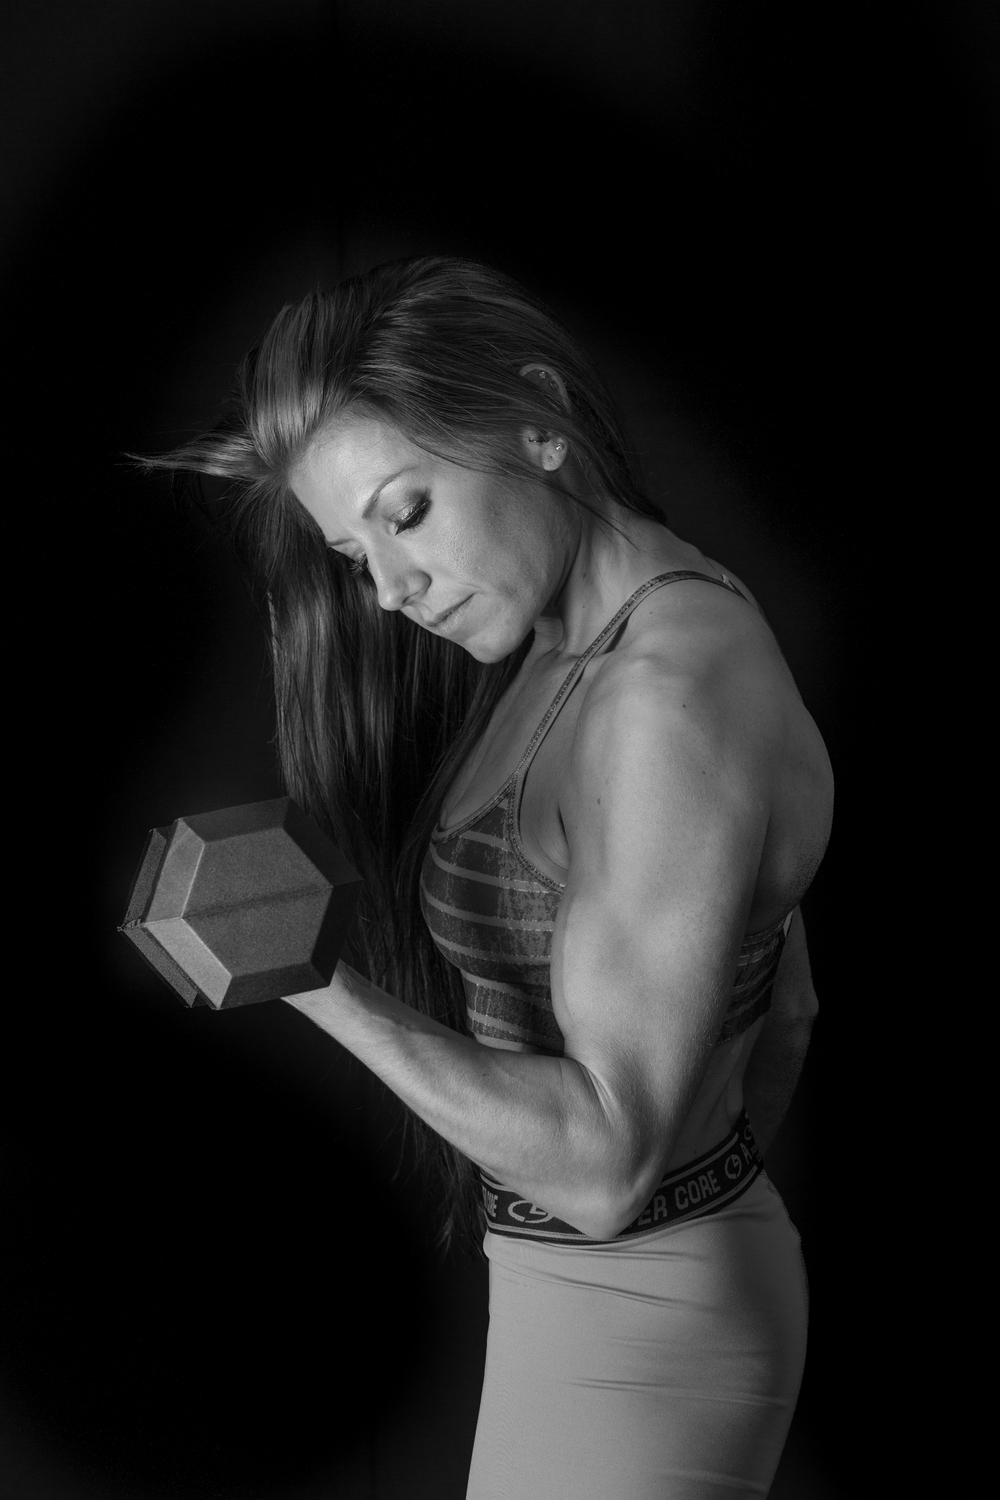 body builder black and white photo .jpg